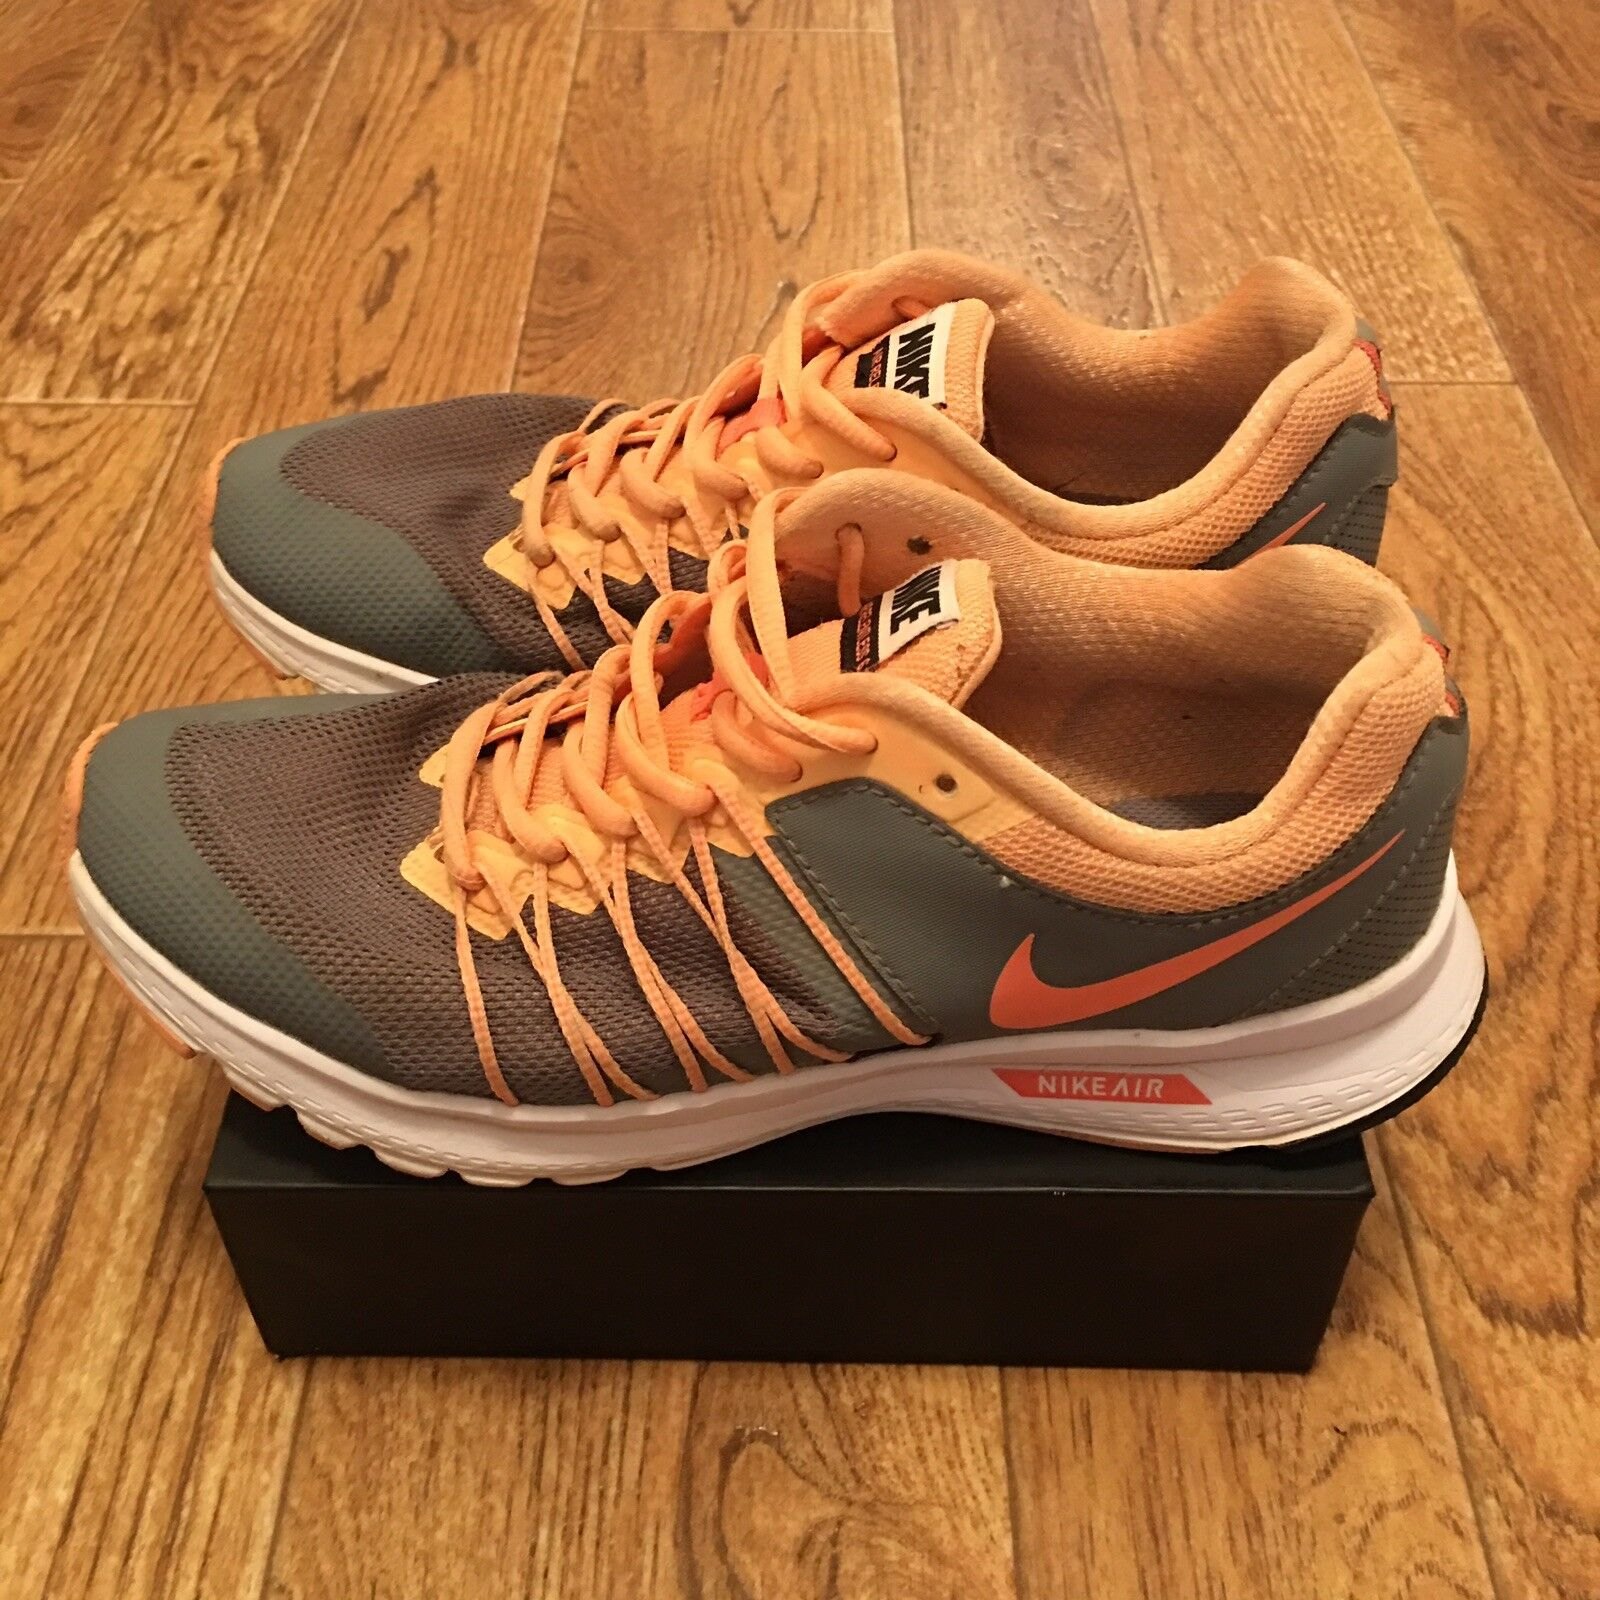 NIKE Womens Air Relentless 6 shoes grey mango 843882 006 US Size 7.5